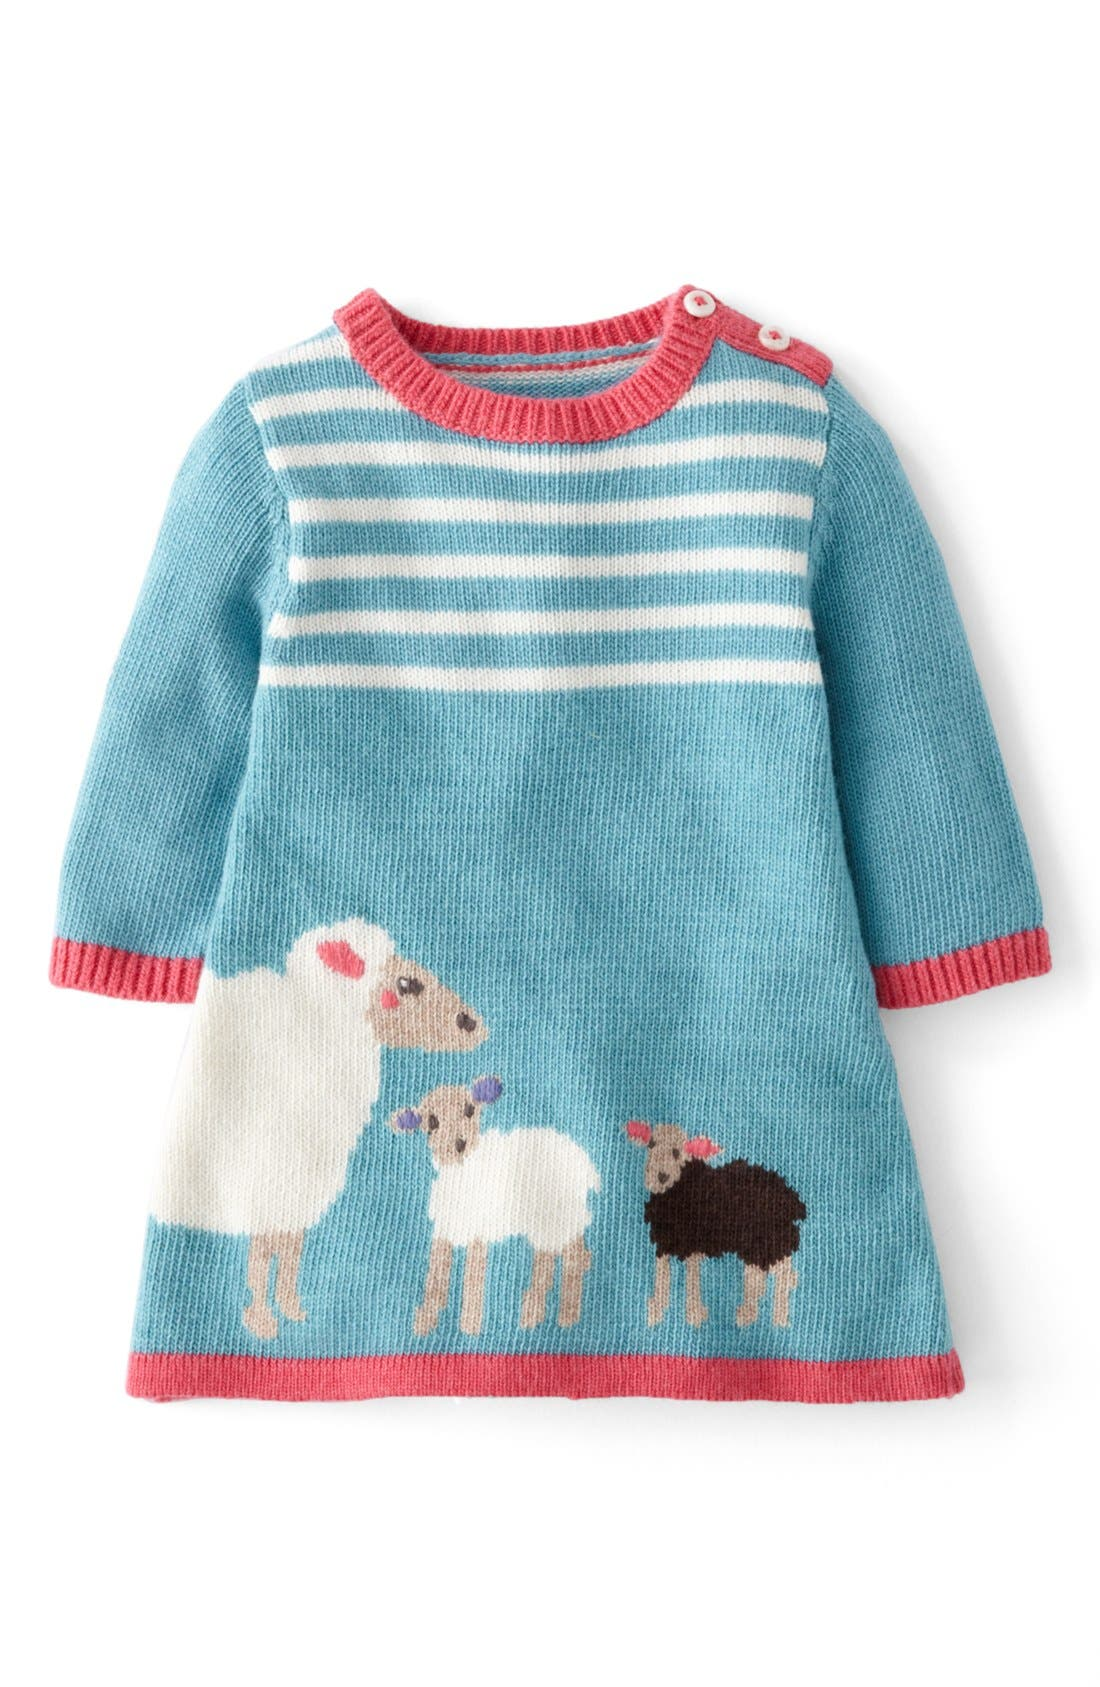 Alternate Image 1 Selected - Mini Boden 'My Baby' Knit Dress (Baby Girls)